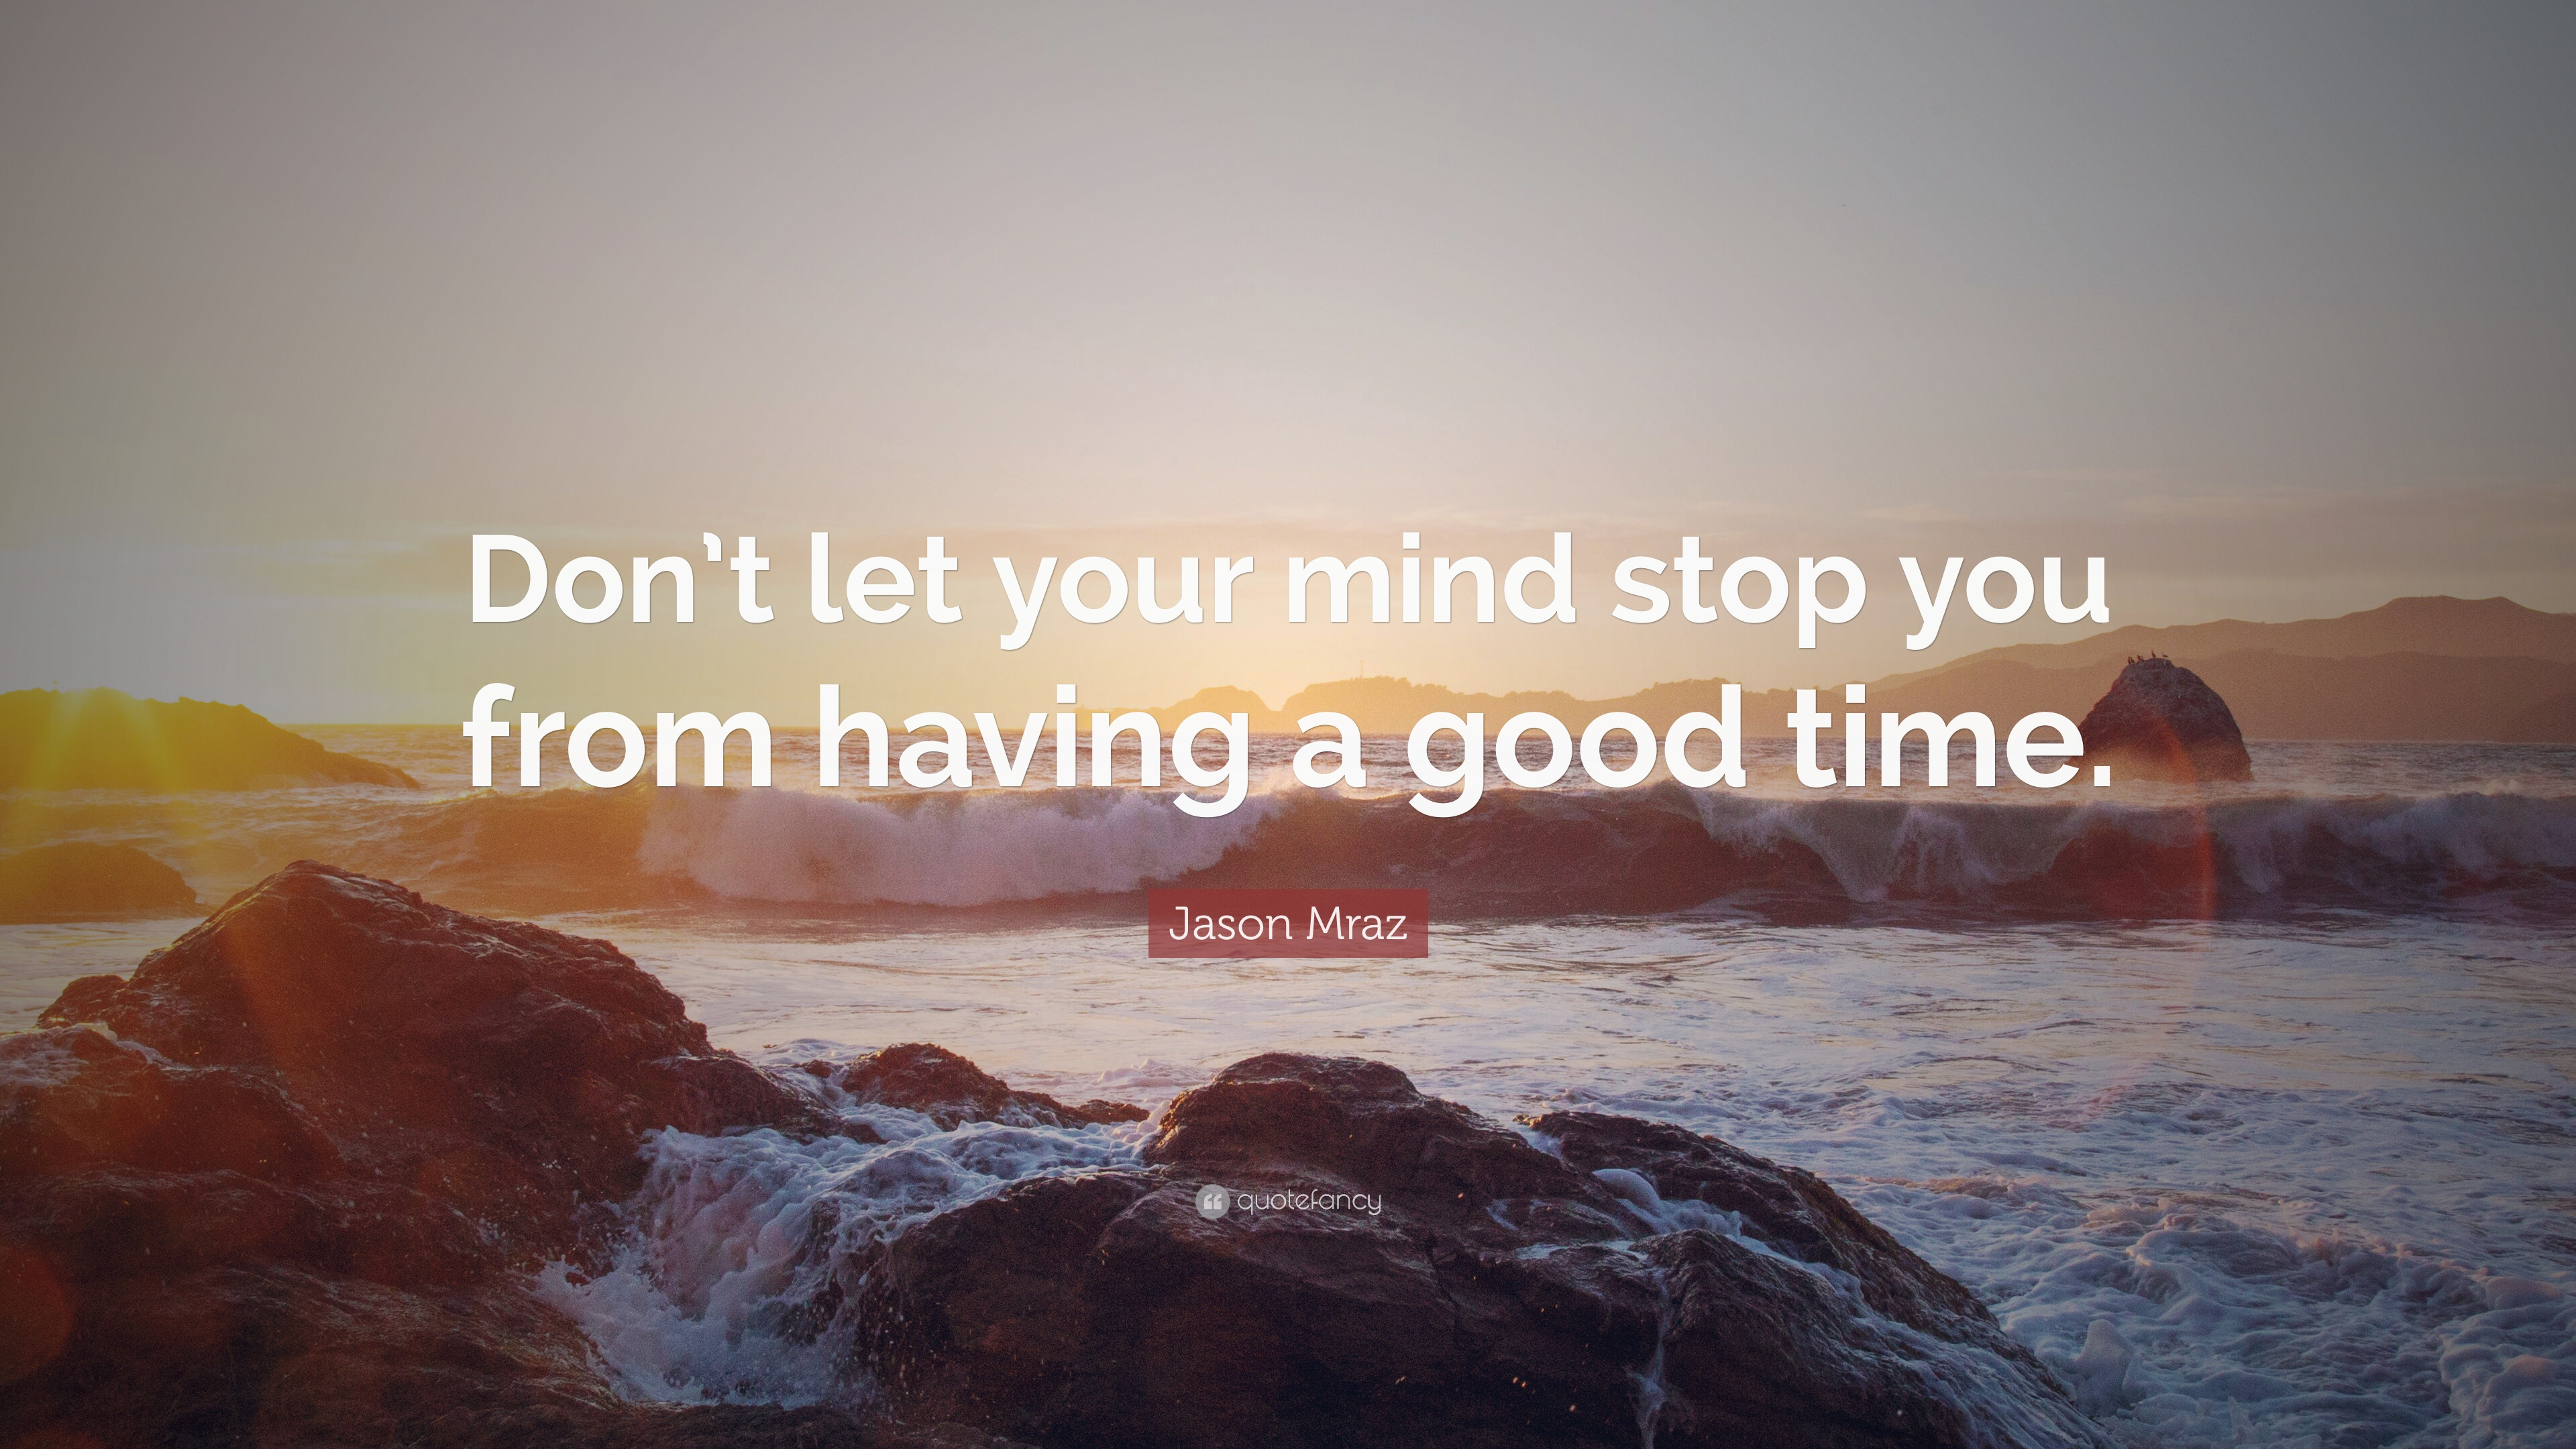 Jason Mraz Quote Dont Let Your Mind Stop You From Having A Good